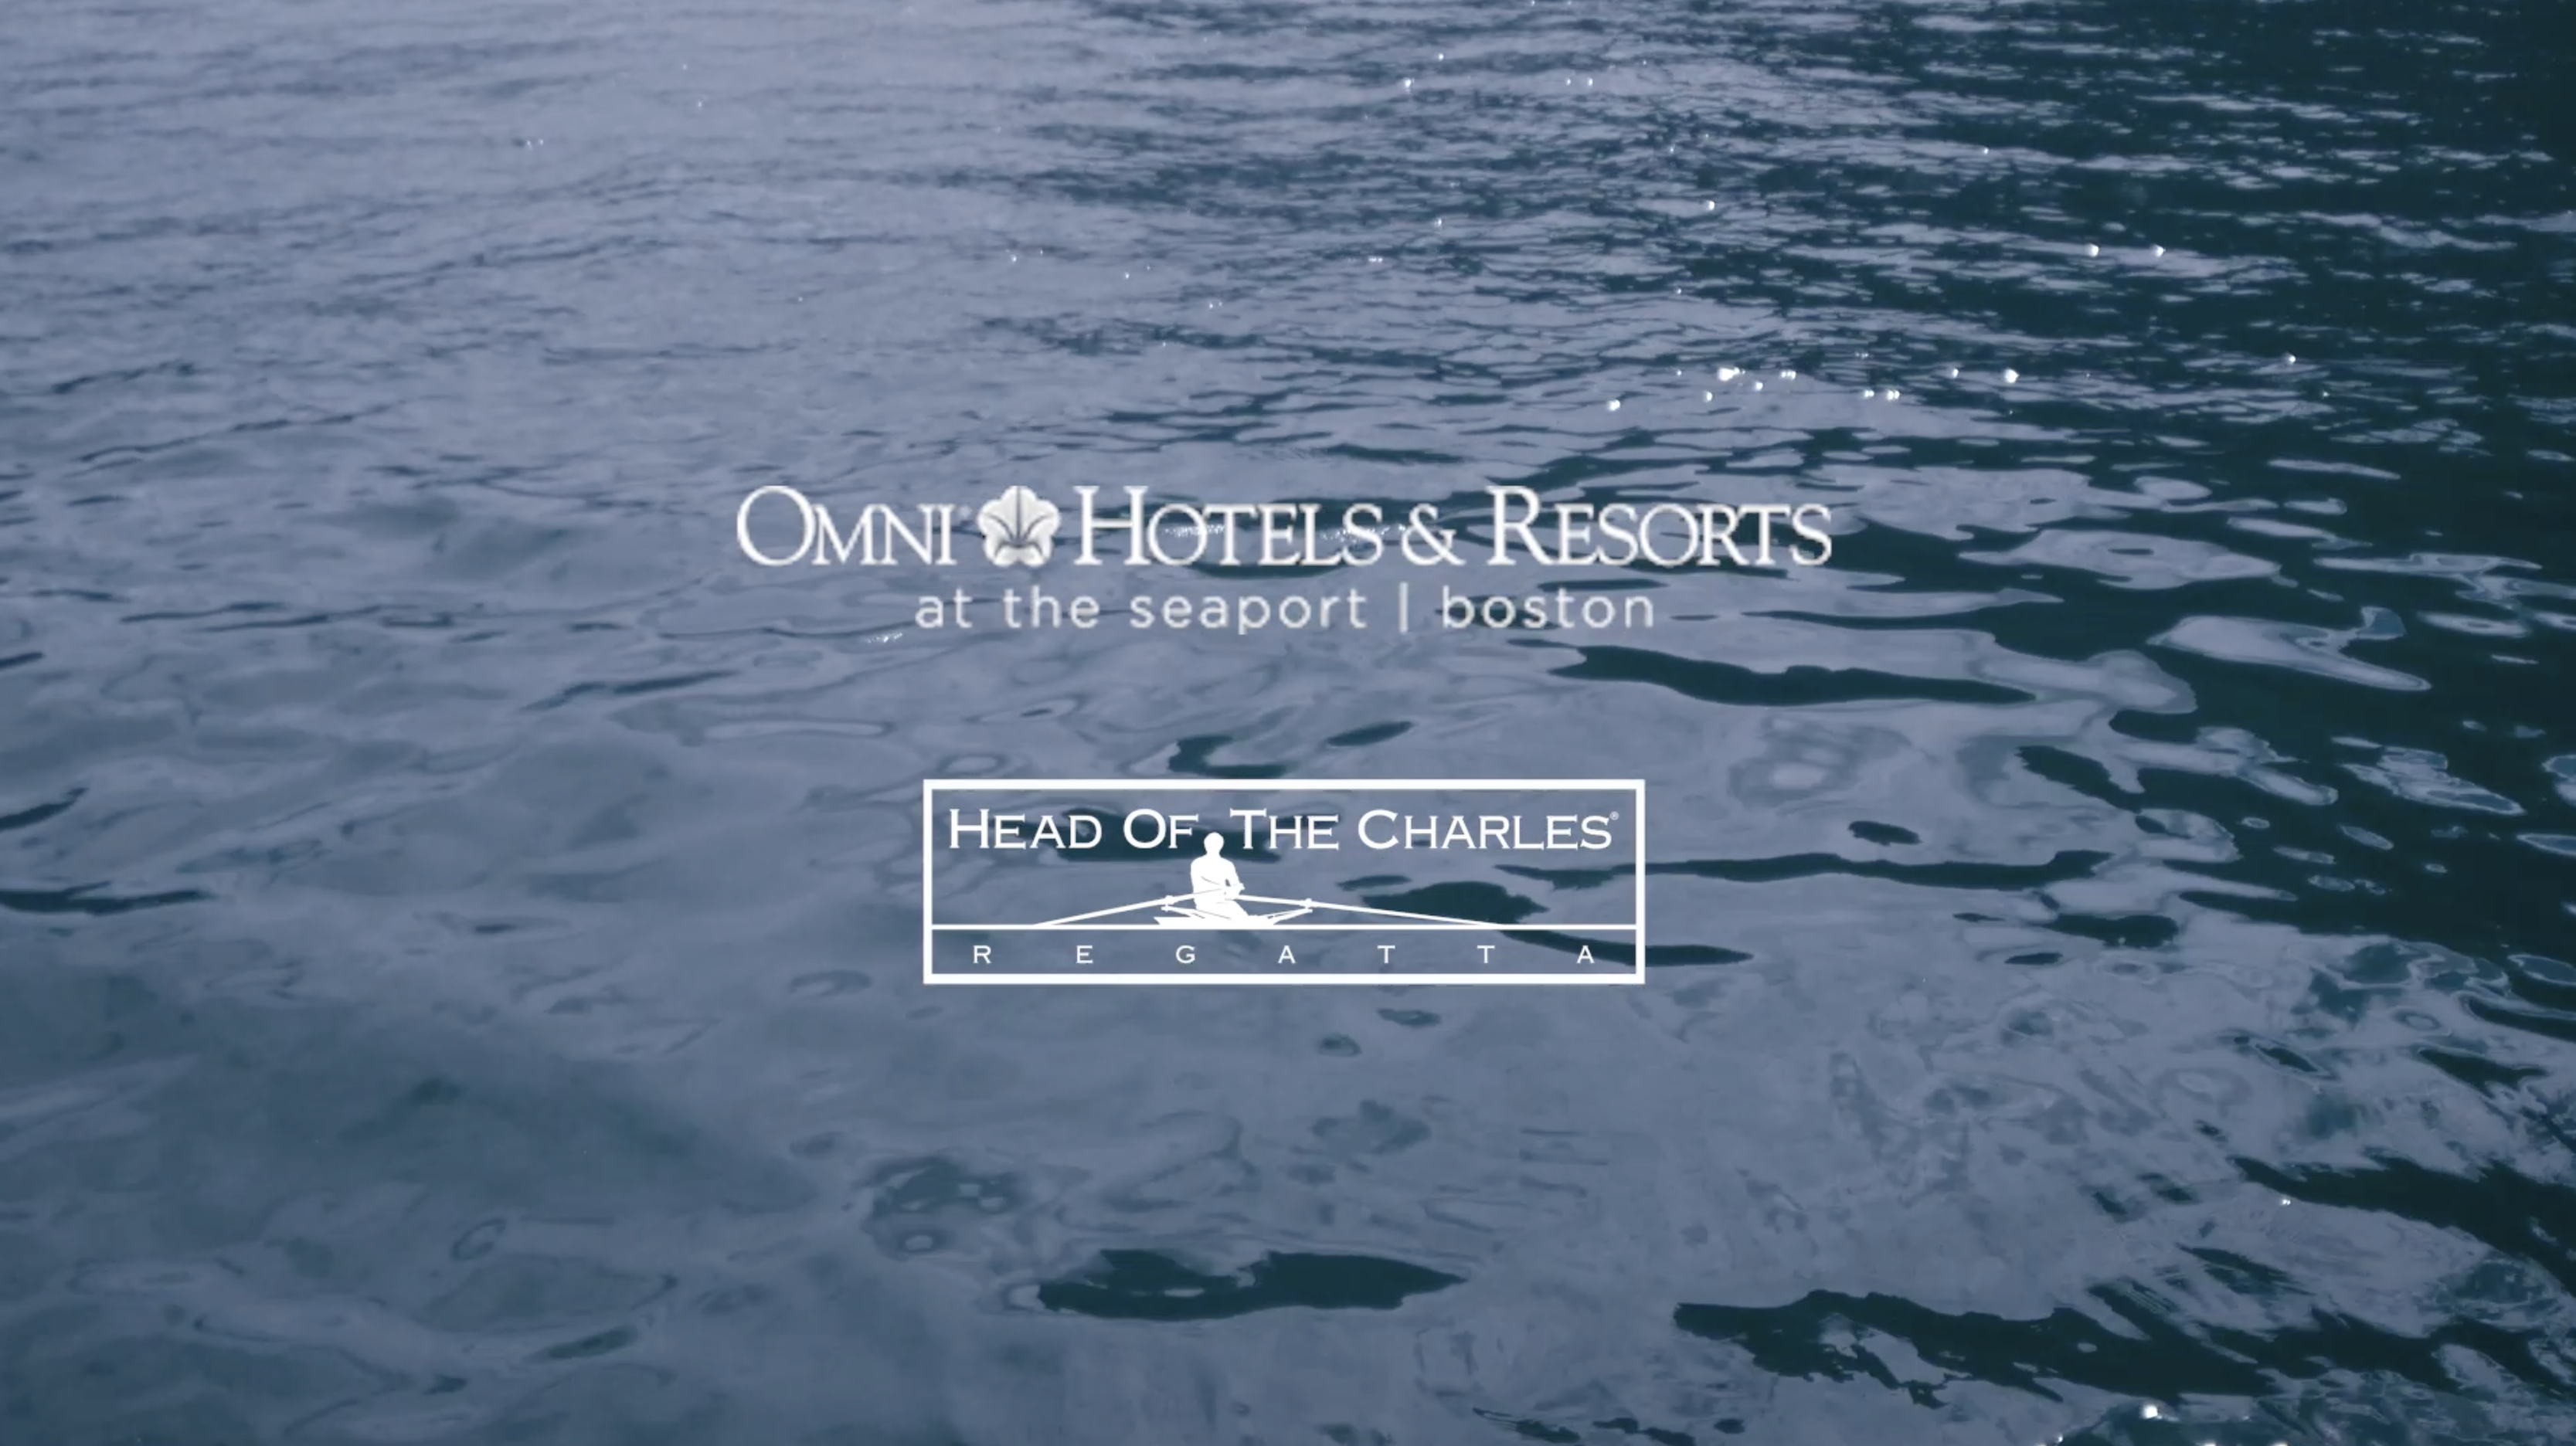 Video Highlight - Omni Boston Hotel at the Seaport | Fred Schoch and Mike Jorgensen